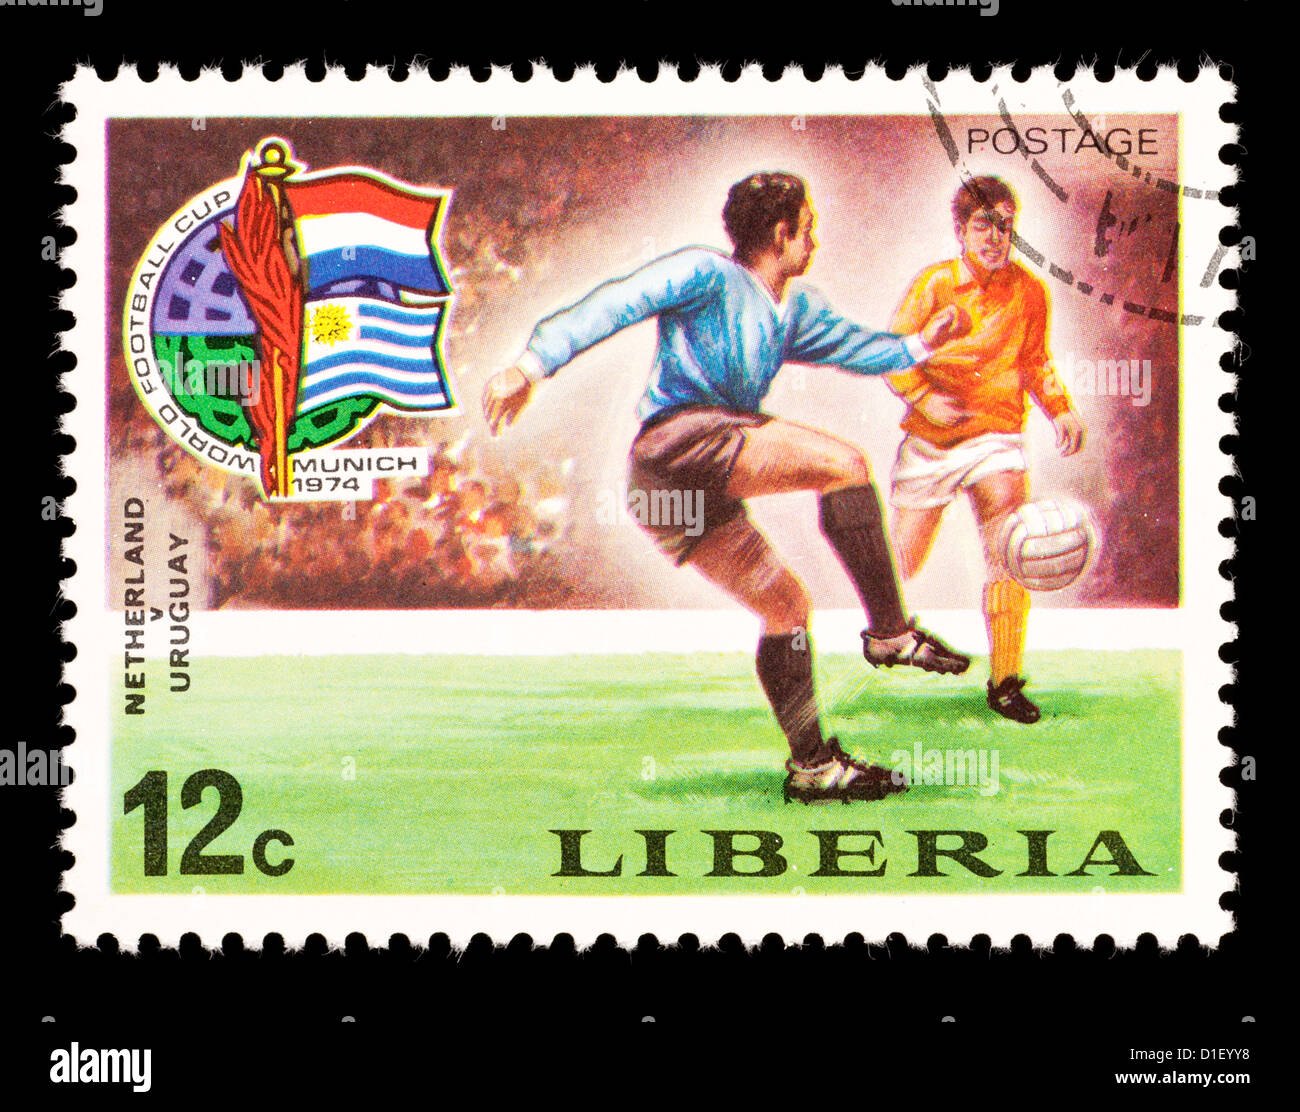 Postage stamp from Liberia depicting soccer players, issued for the 1974 Soccer World Cup in Munich. - Stock Image